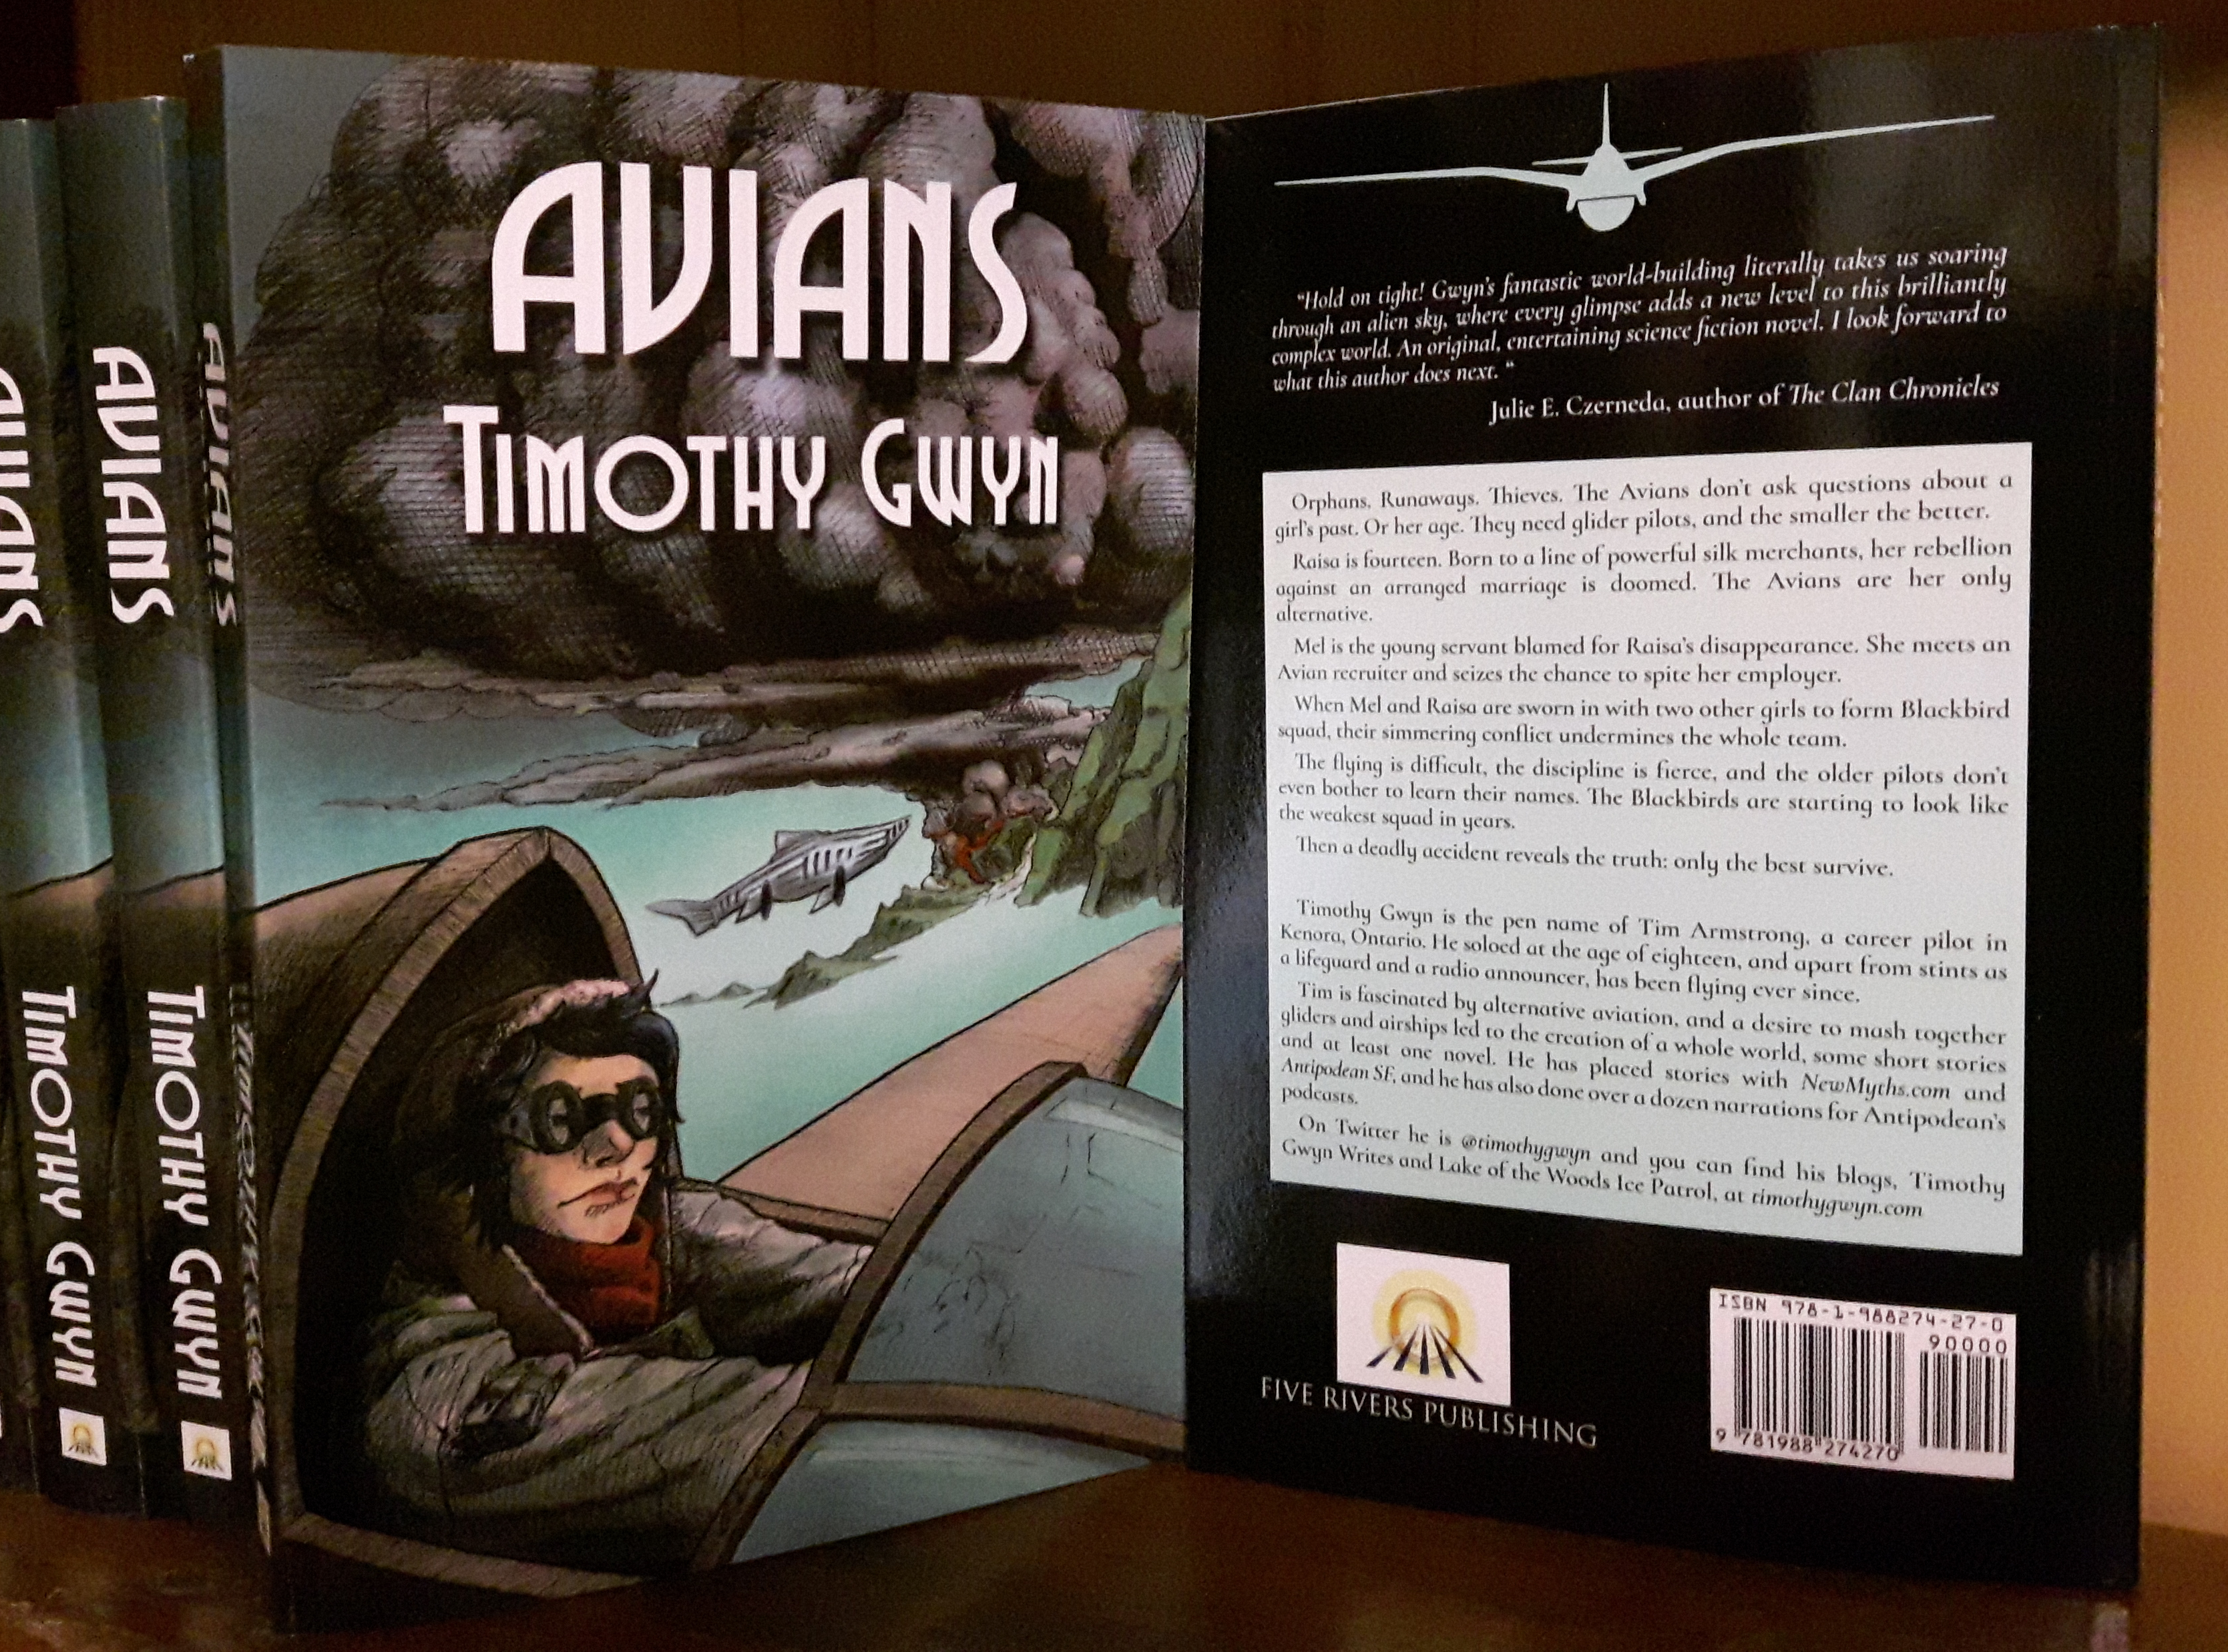 AVIANS First Edition Cover